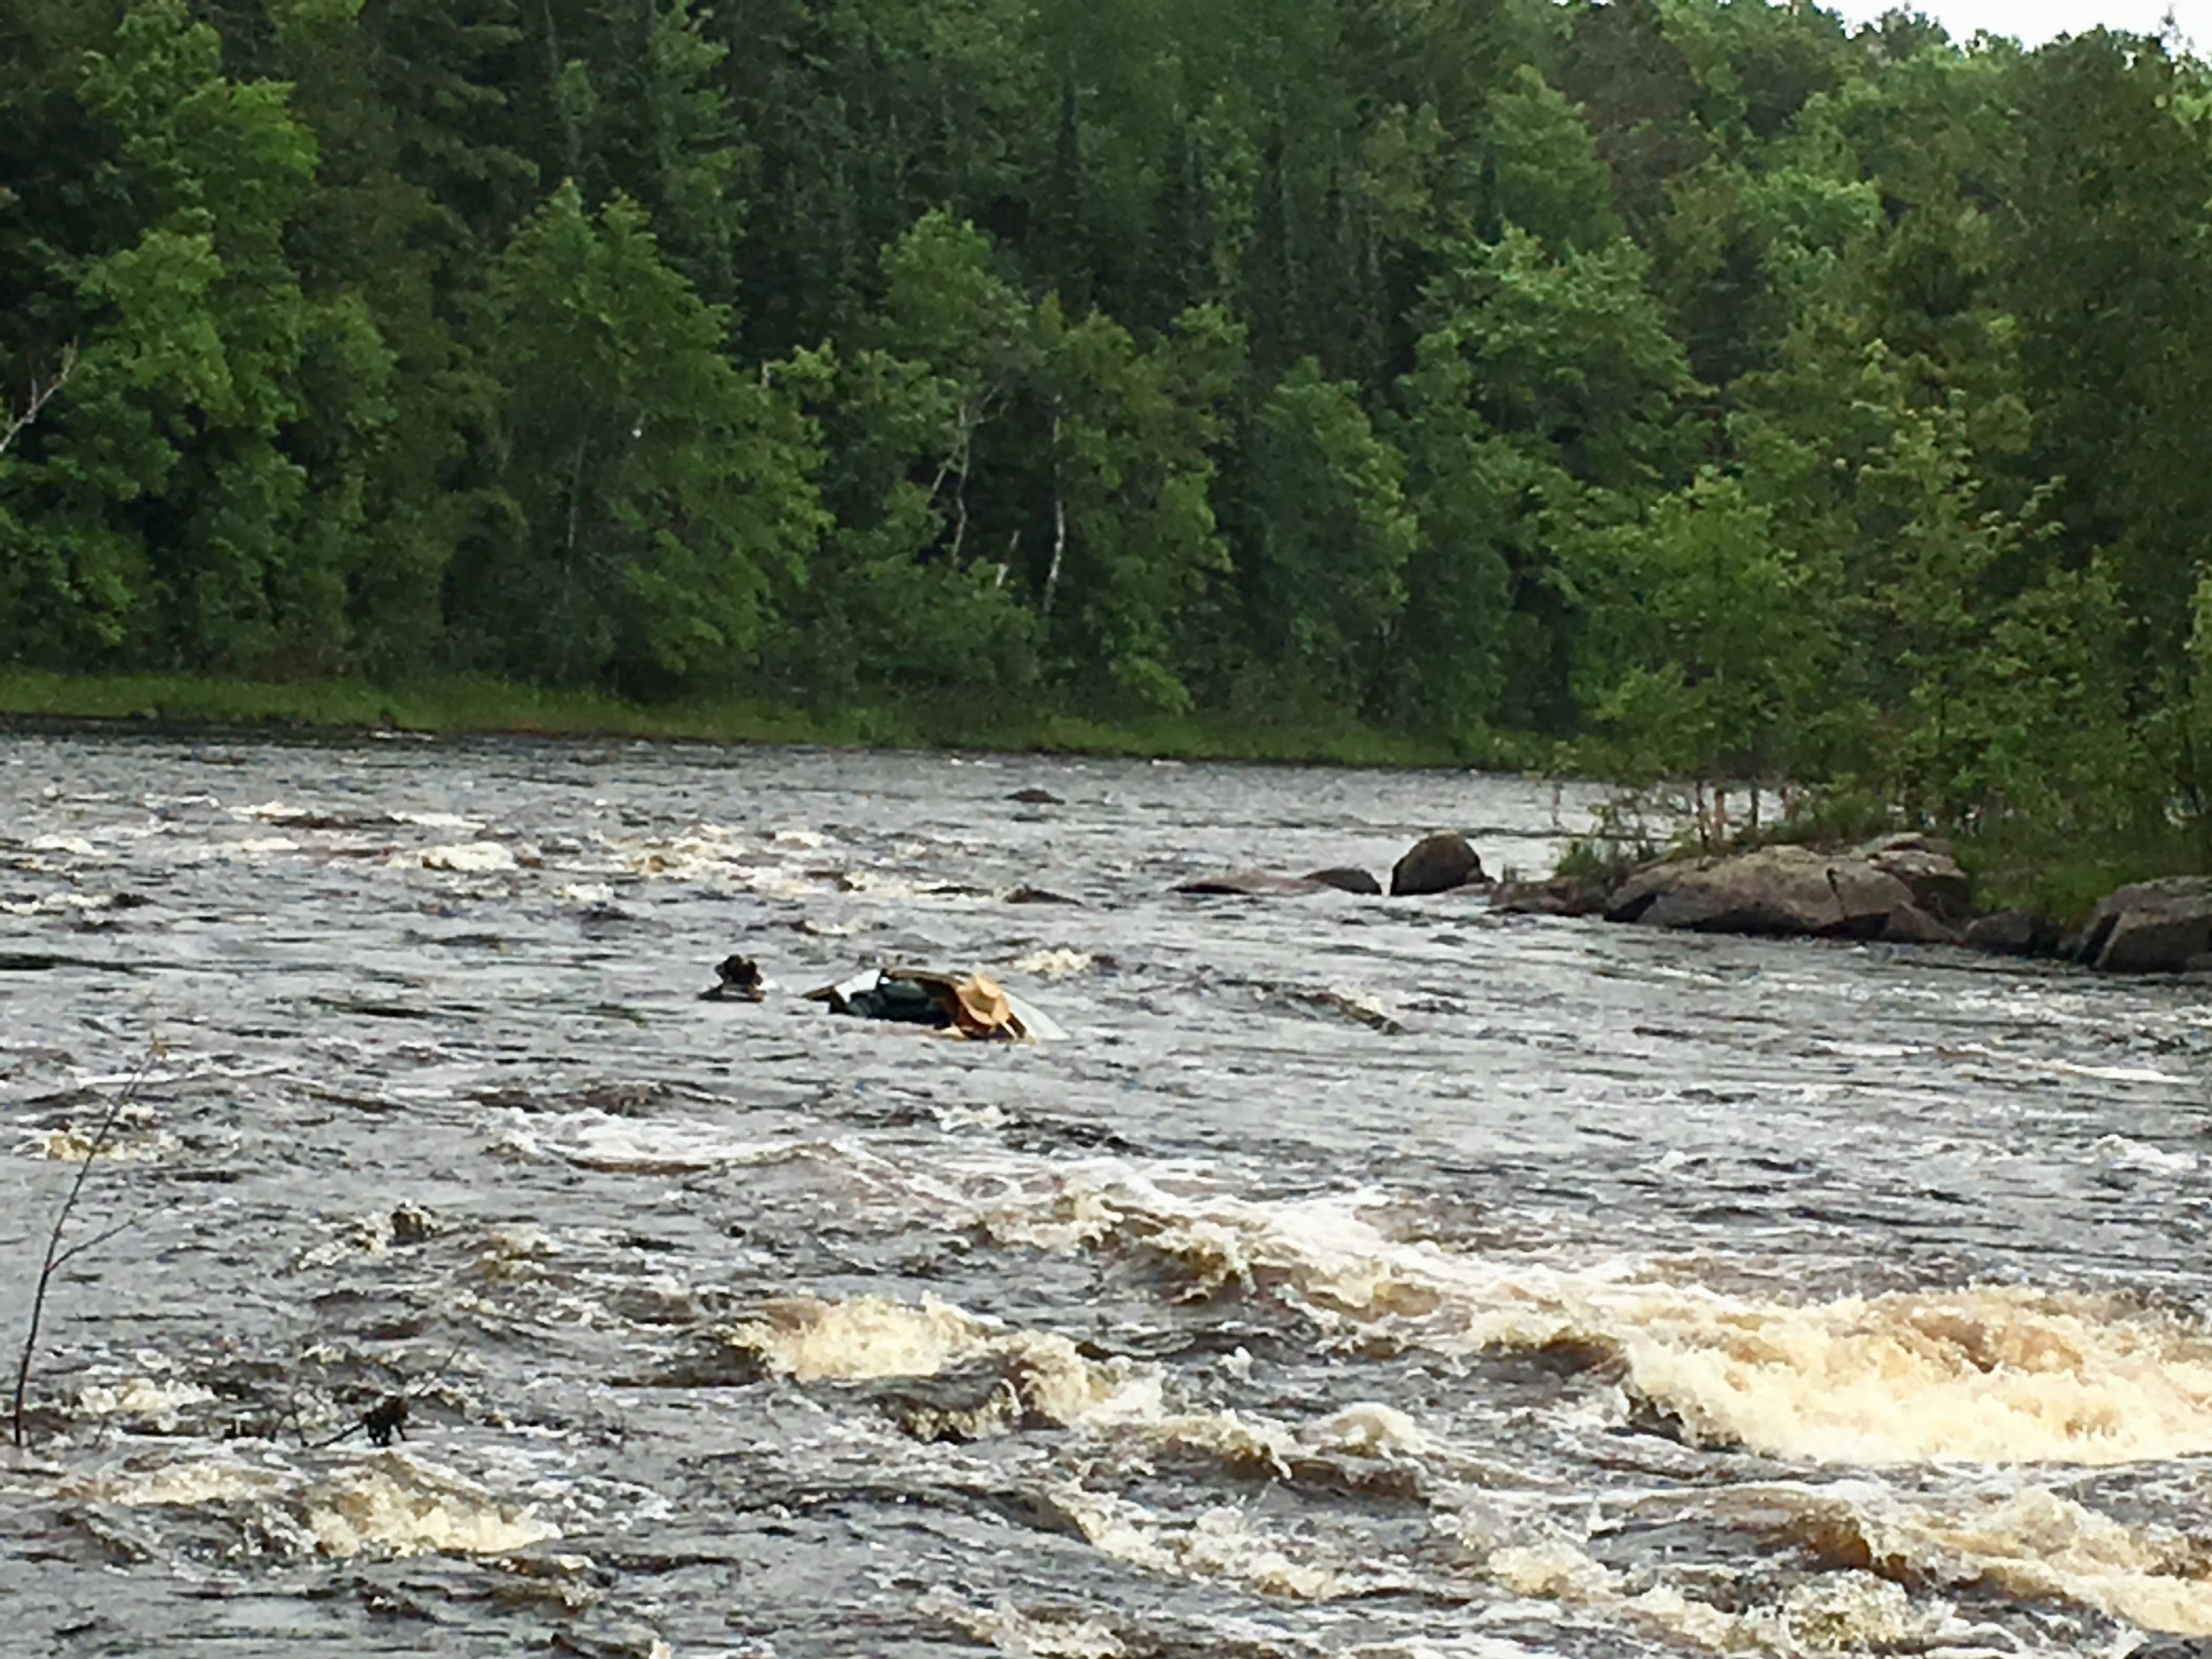 BMP Post_Expedition Log_Flambeau River_Swimming2_July 2017.JPG